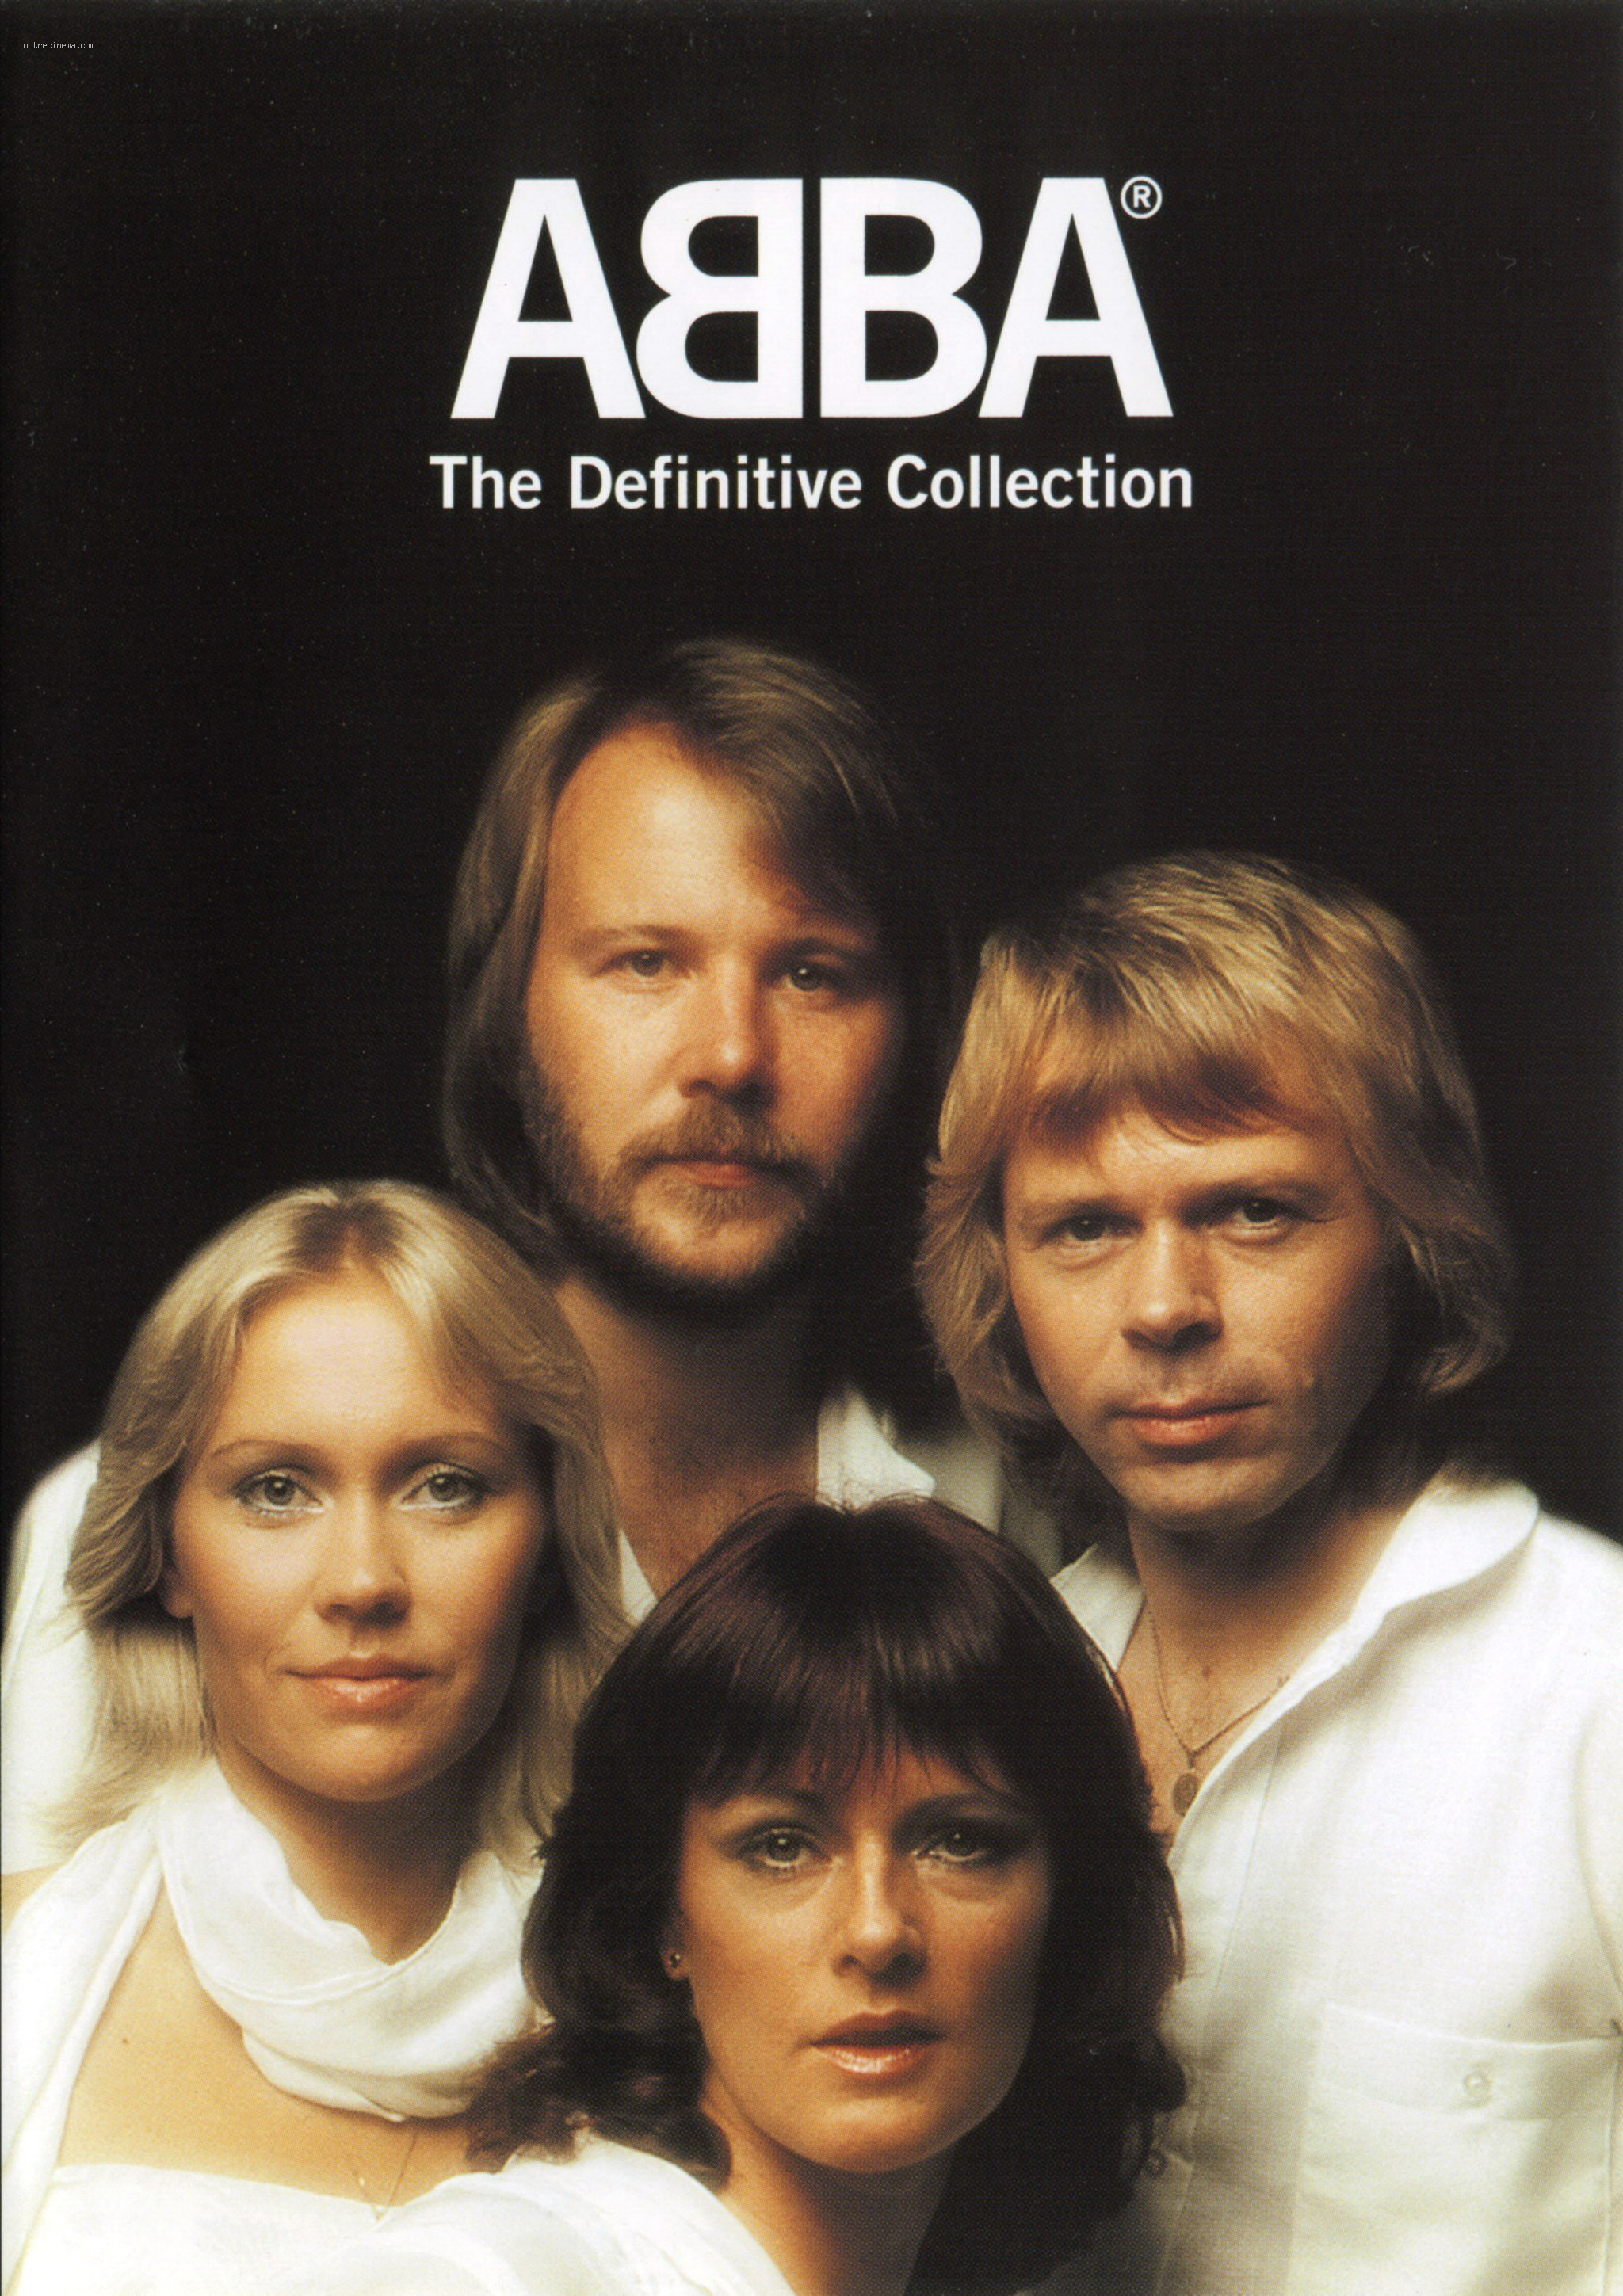 abba---the-definitive-collection-poster_397151_26581.jpg